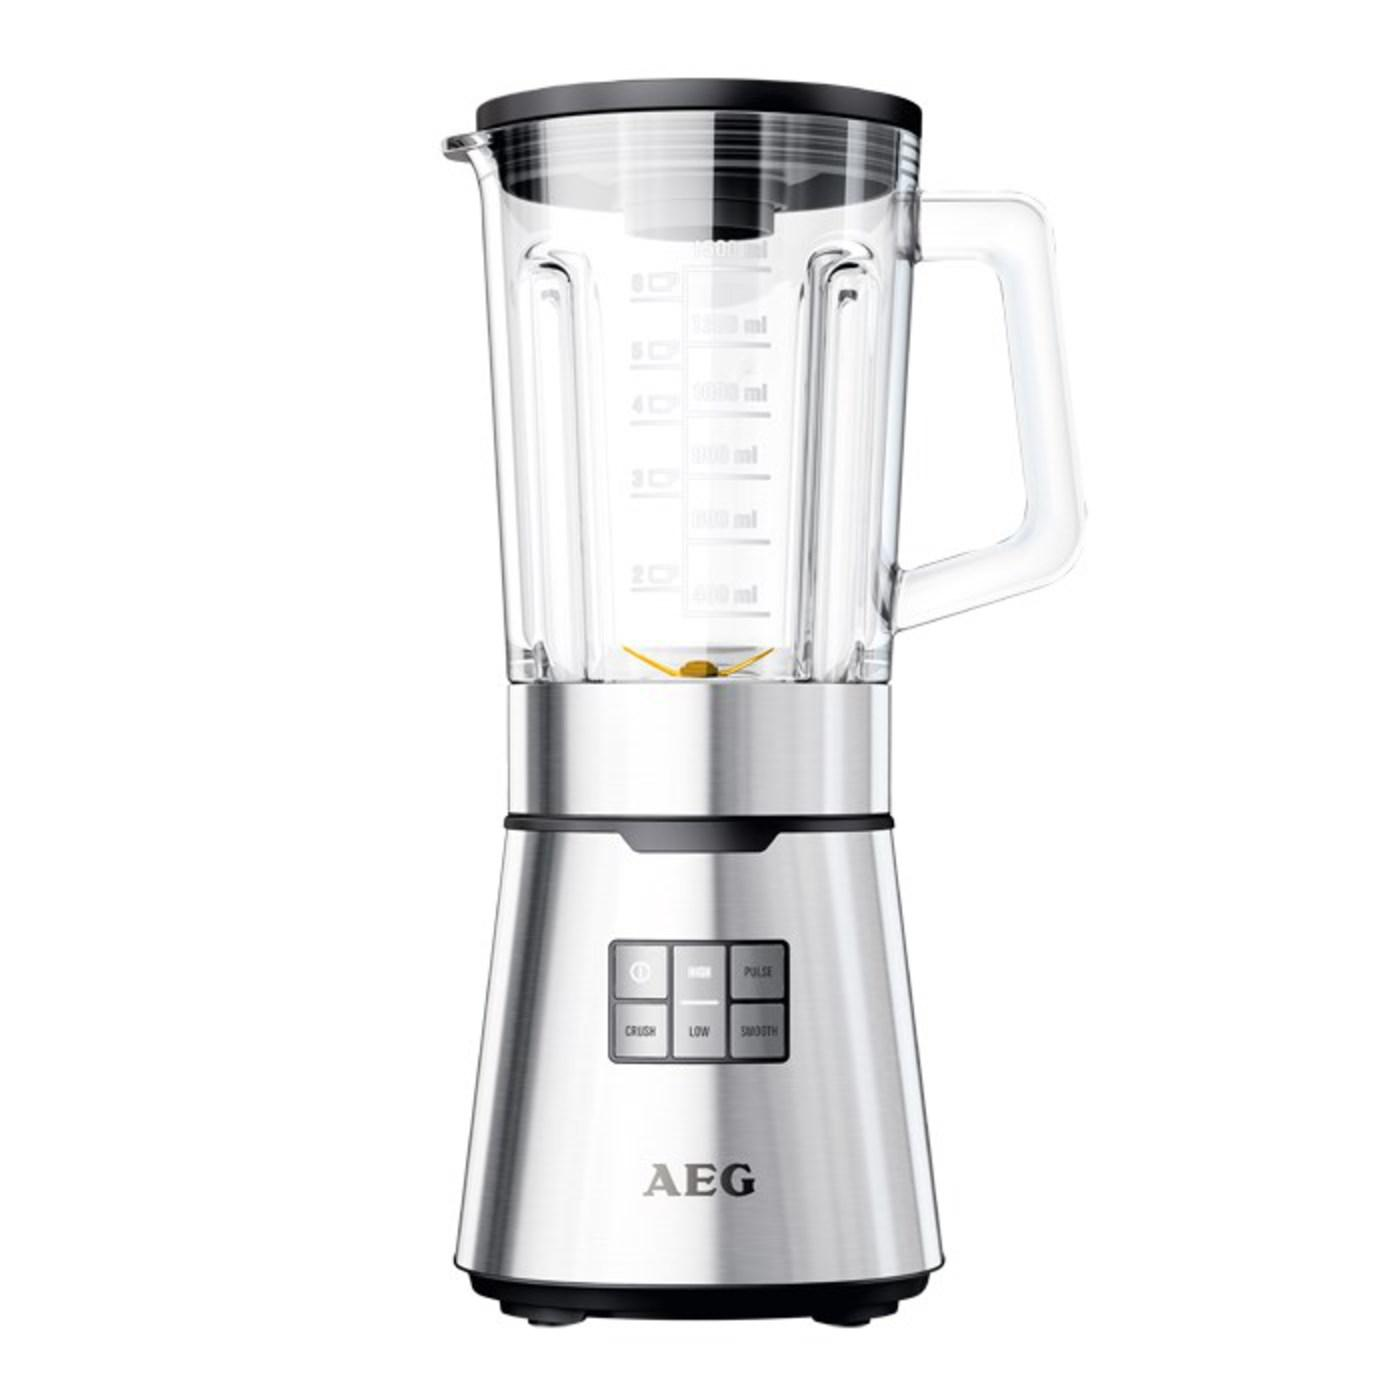 AEG - SB7500 - Blender perfect mix 900 W